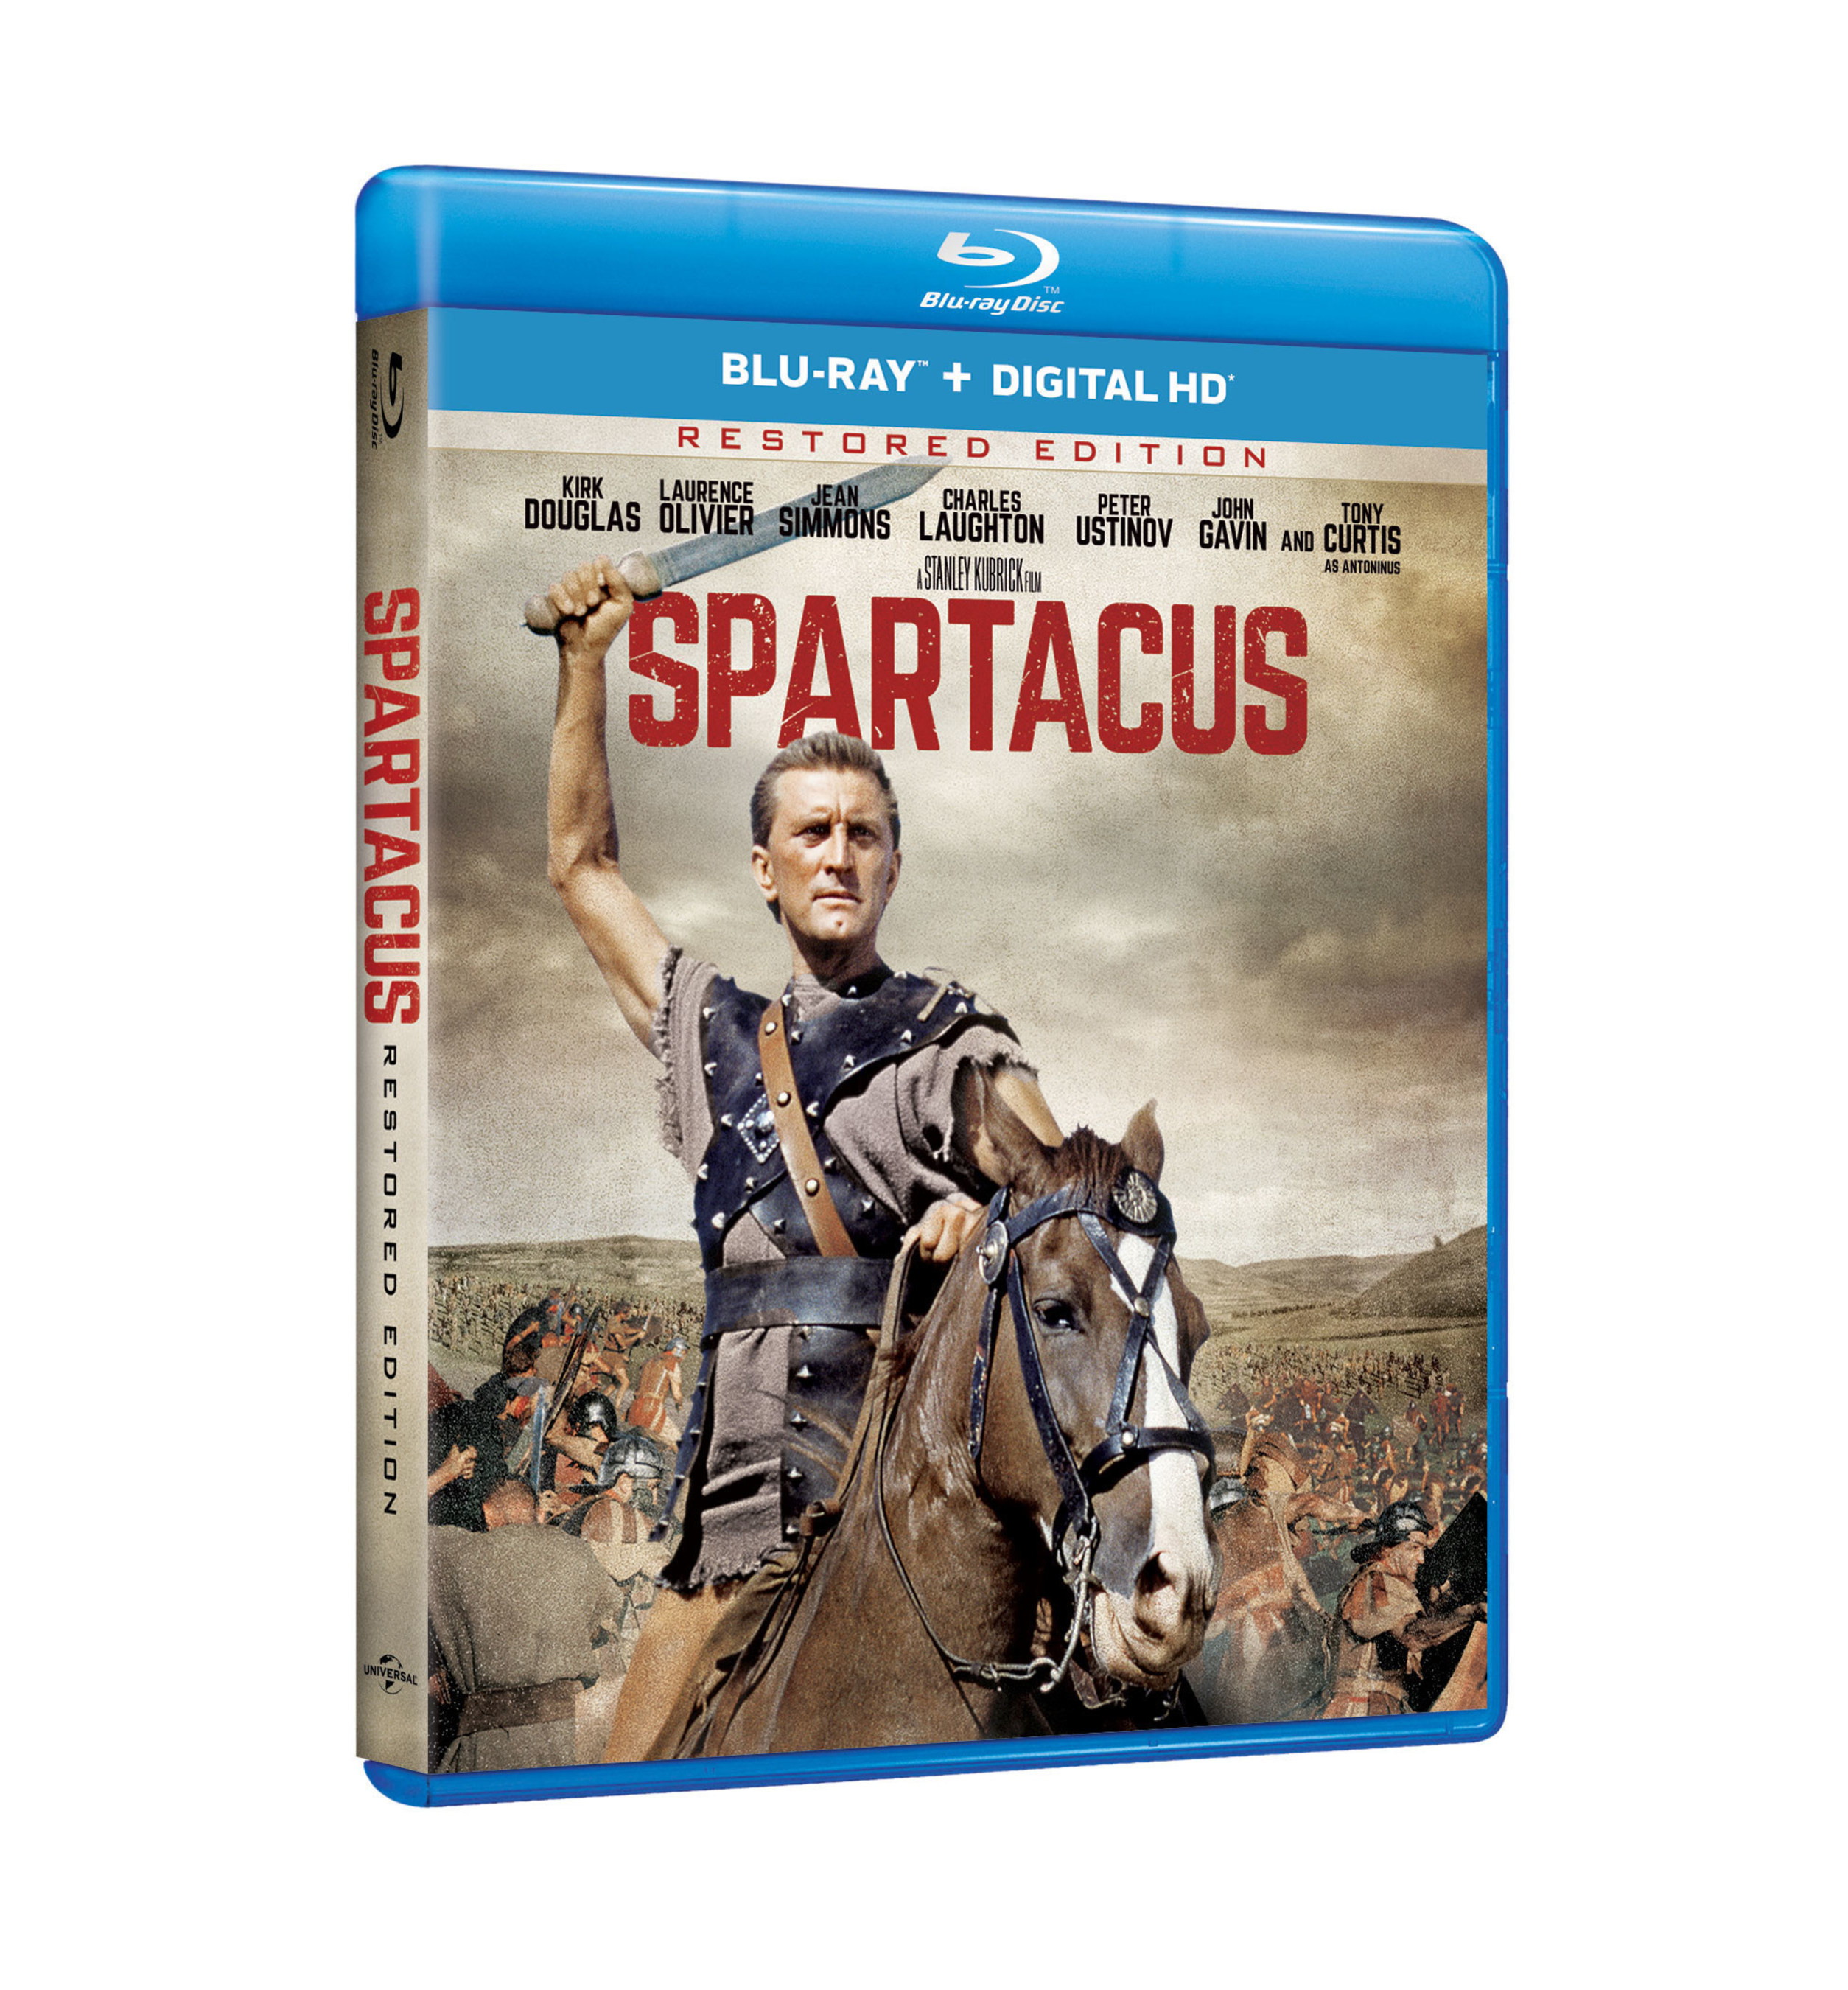 From Universal Pictures Home Entertainment: SPARTACUS: RESTORED EDITION